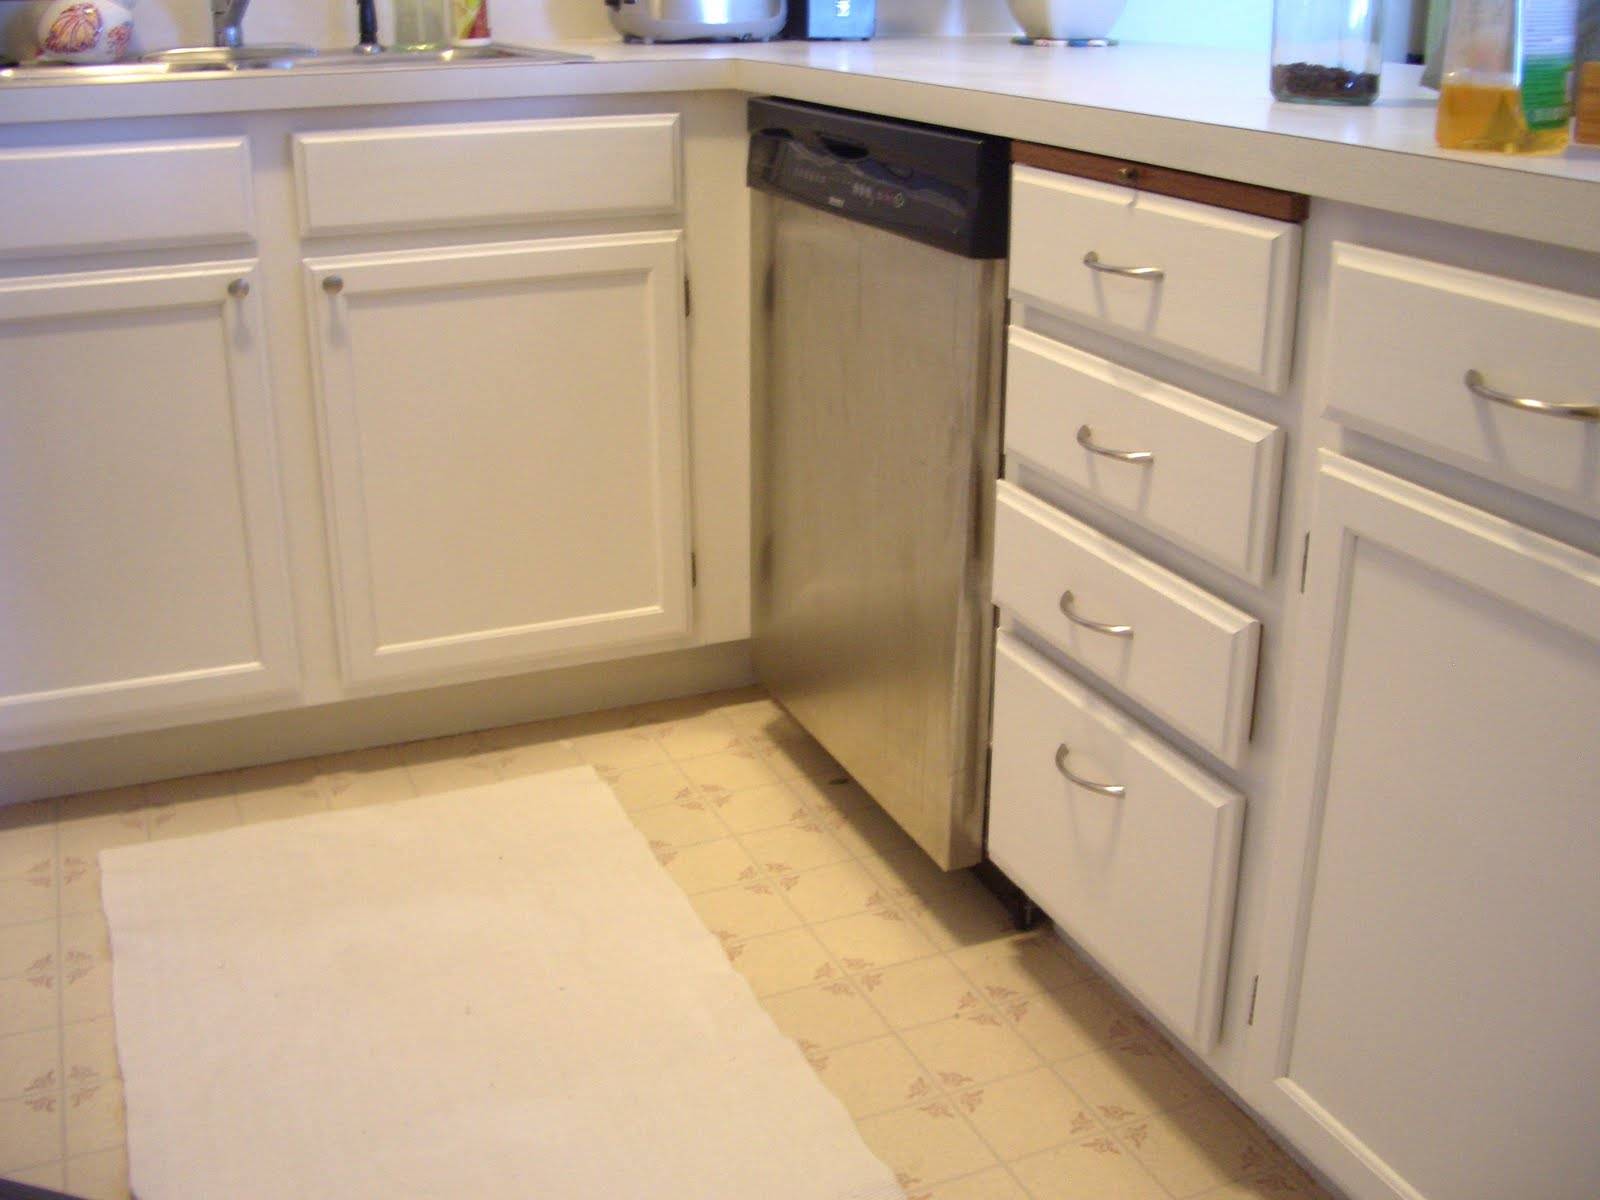 Rustoleum Kitchen Cabinet Kit Reviews Pine Bench Posy The Porcelain Pig Final Photos And Review